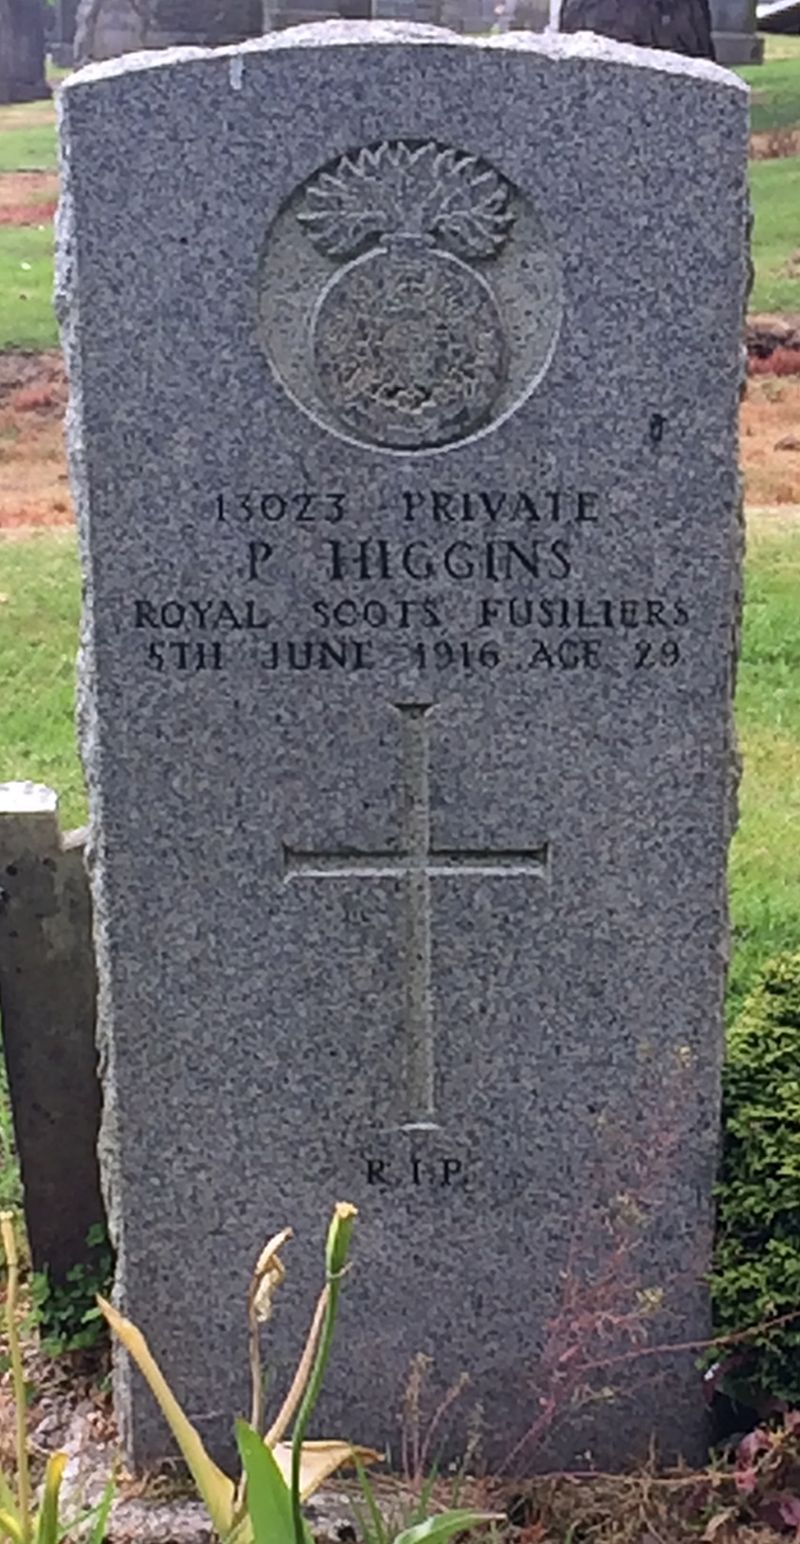 Peter Higgins Kilbarchan memorial